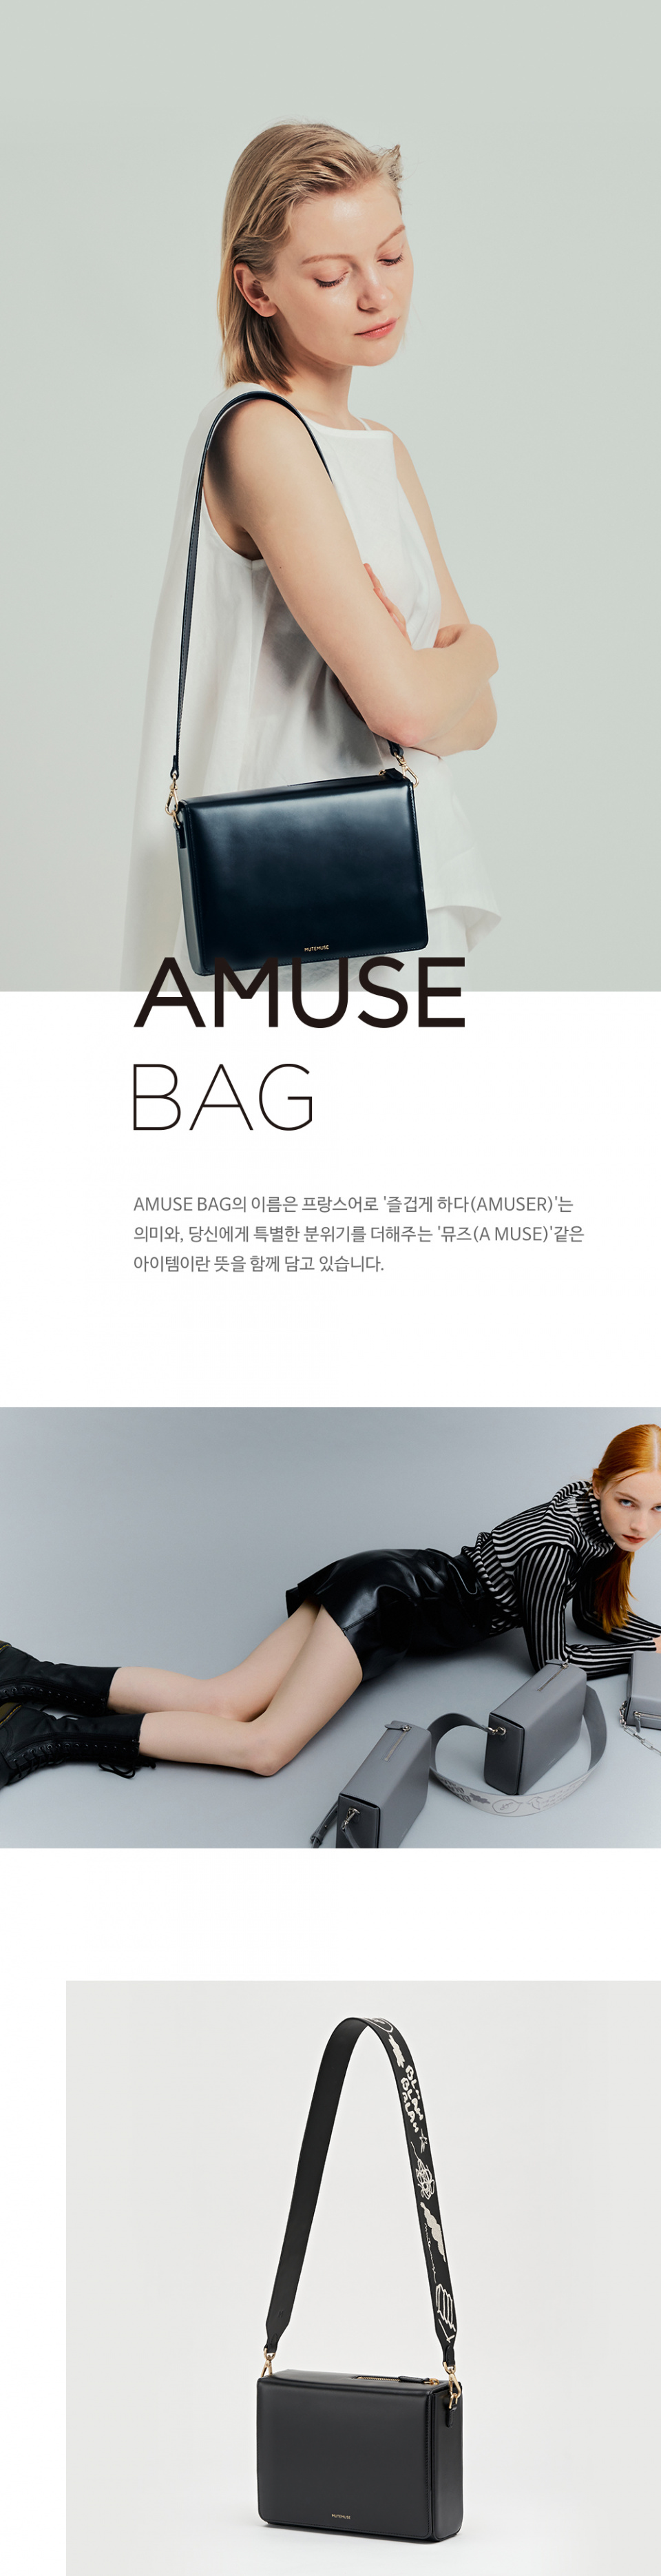 뮤트뮤즈(MUTEMUSE) AMUSE Bag (Black) + CHIT-CHAT Artwork Strap (Ink)